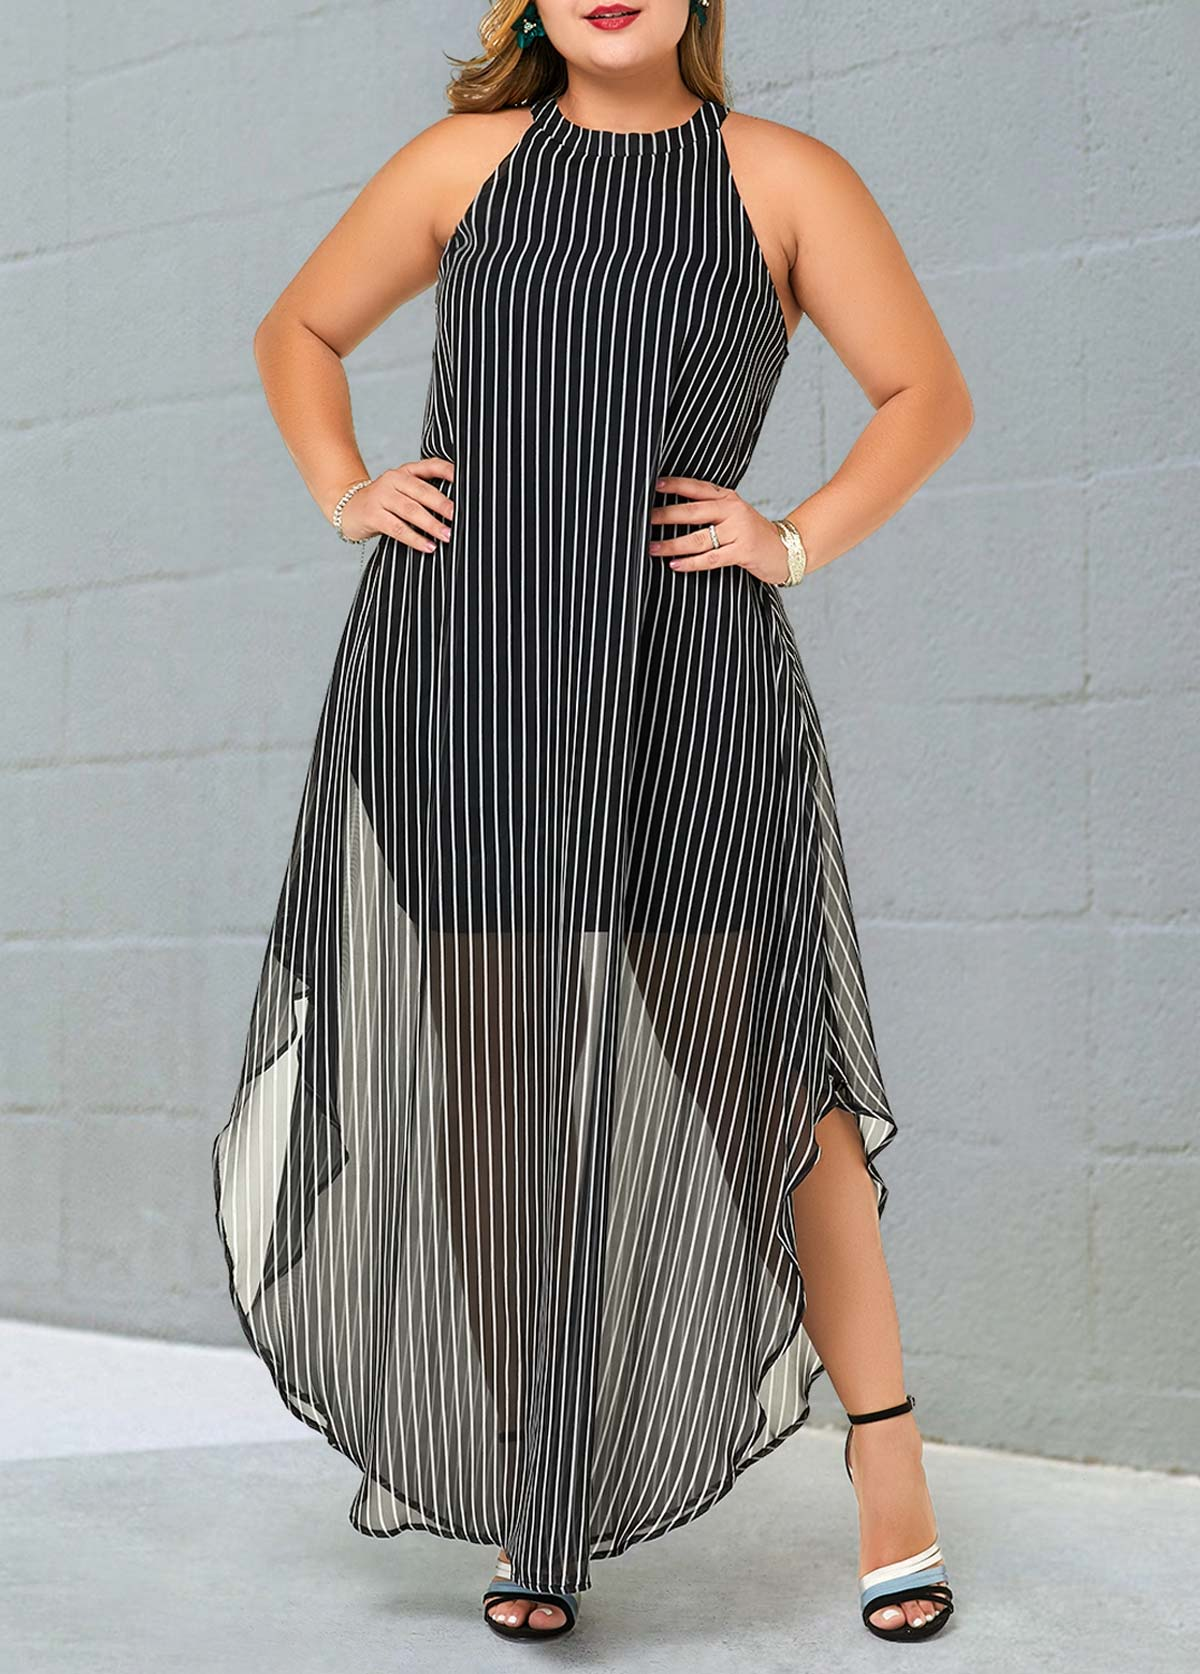 ROTITA Plus Size Striped Bib Neck Semi Sheer Dress